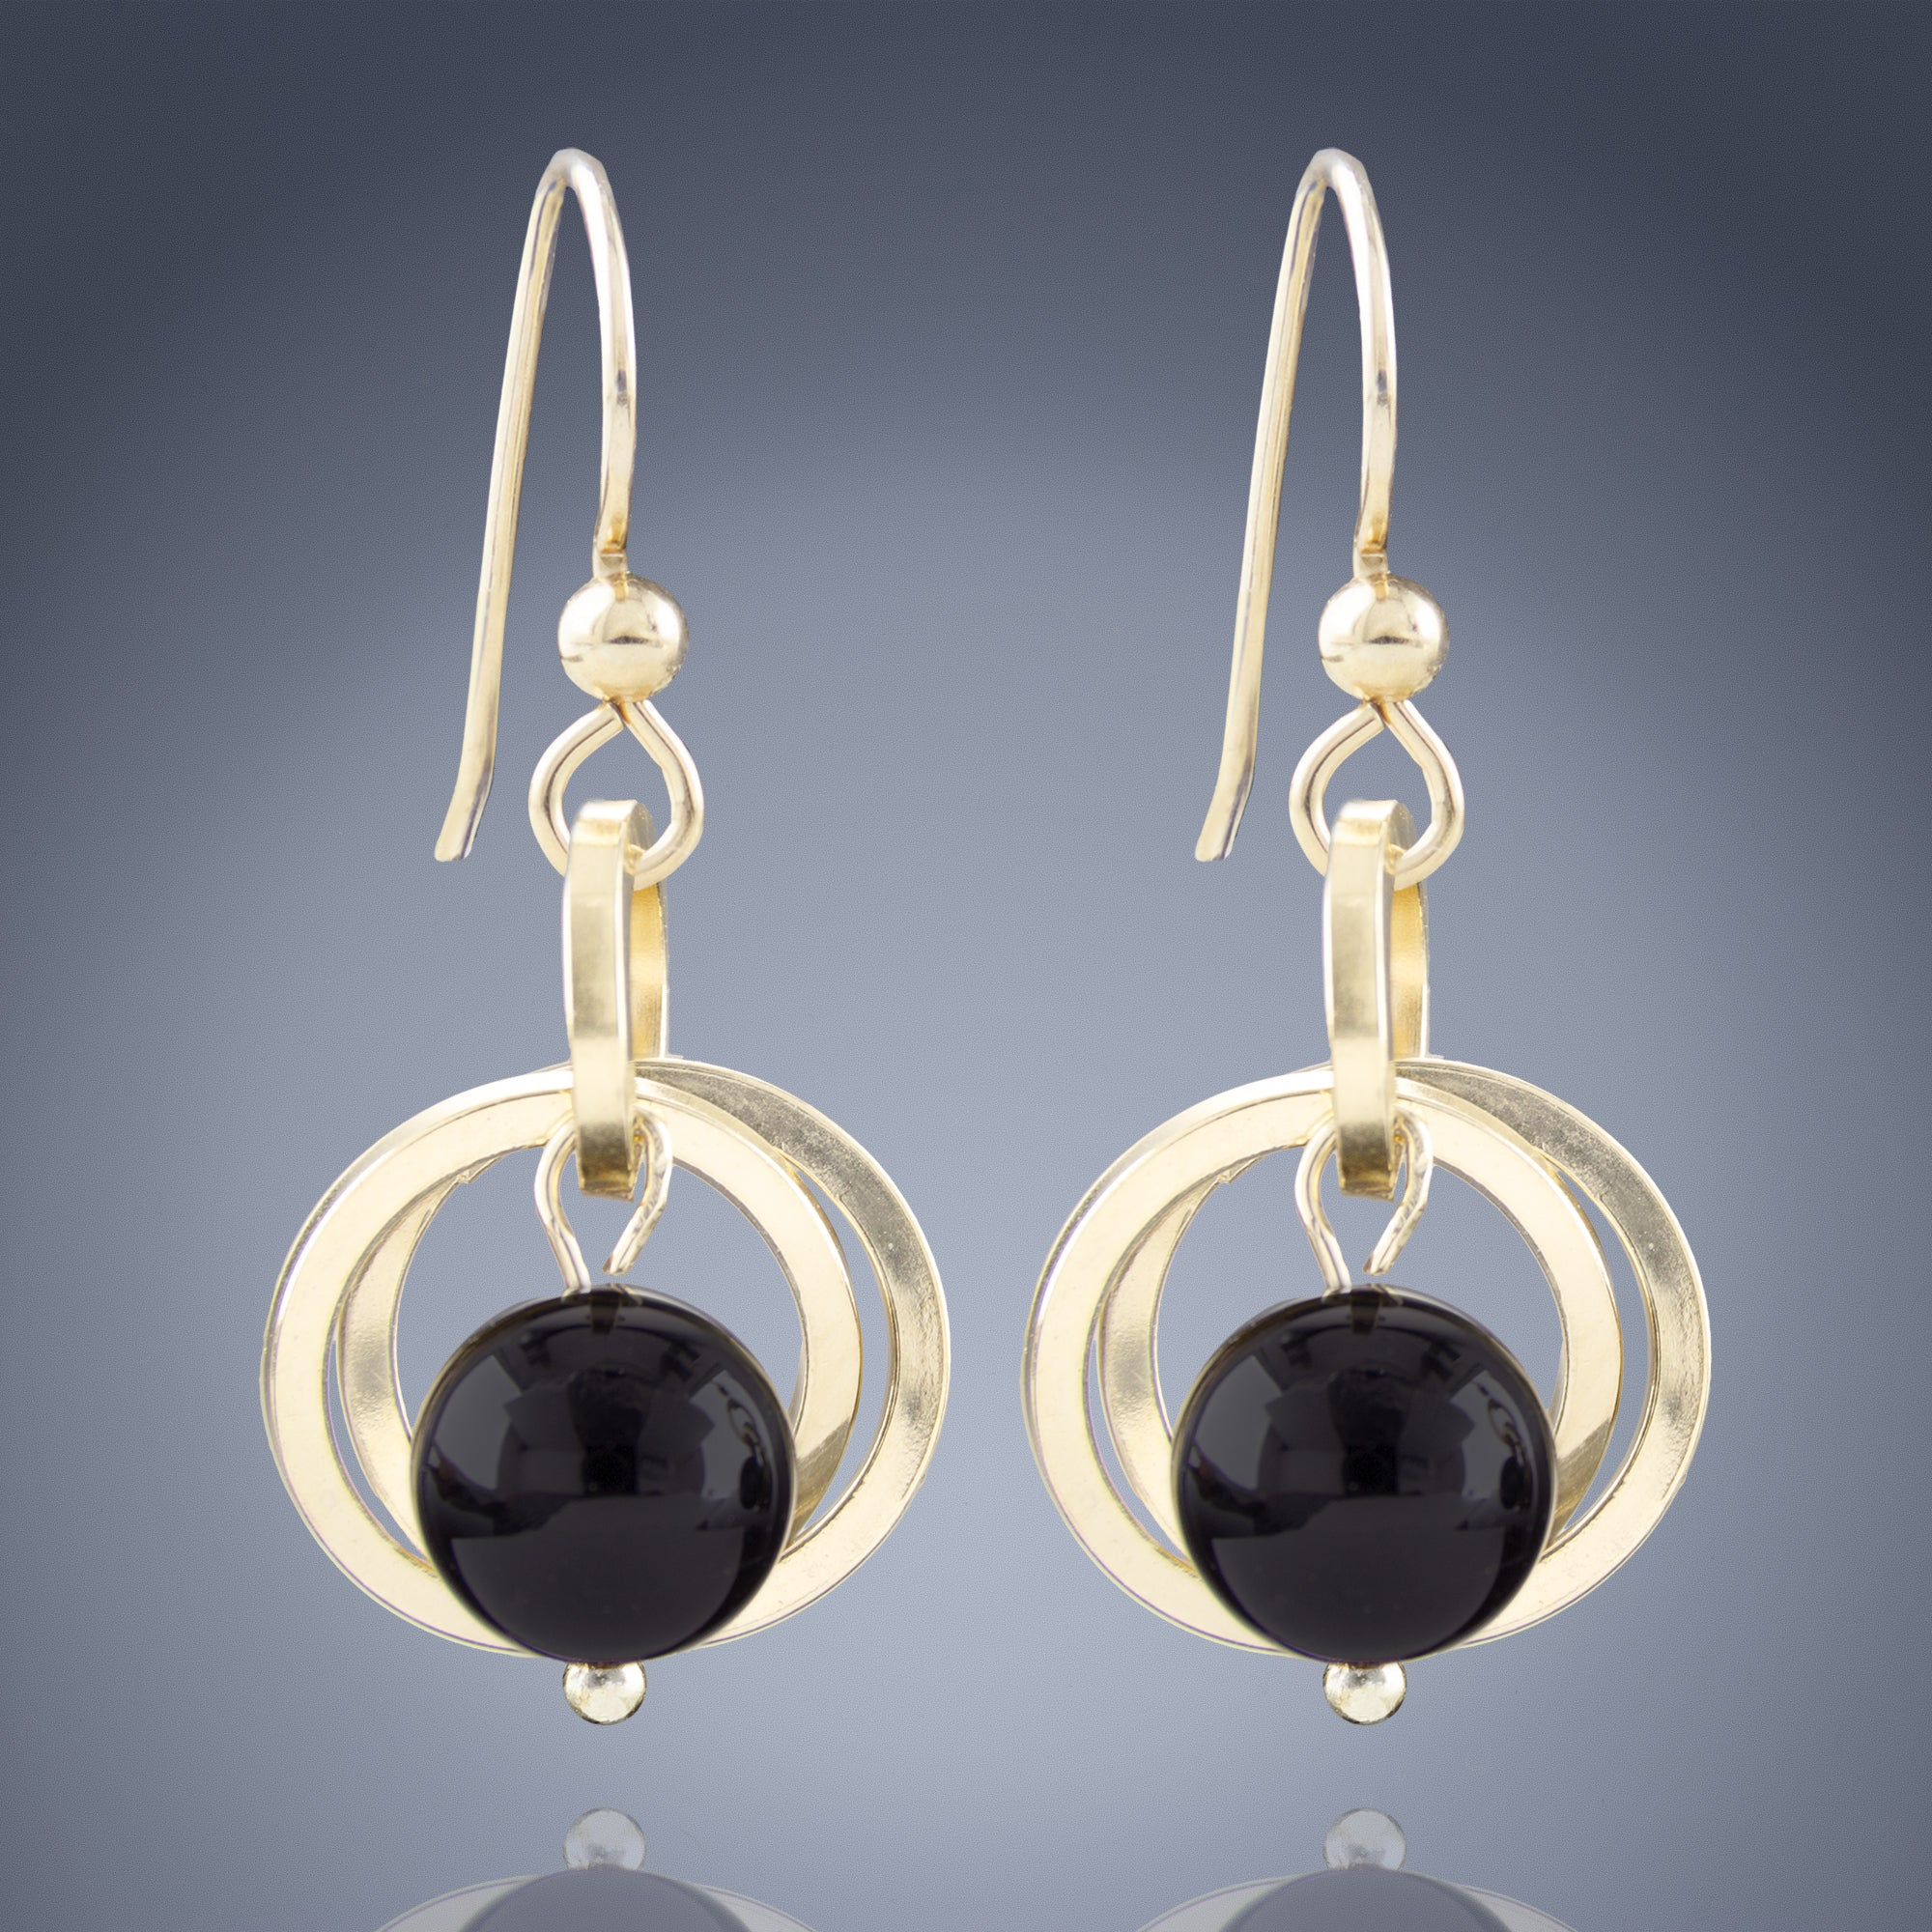 Handcrafted Black Onyx Genuine Gemstone Dangle Earrings in 14K Yellow Gold Fill